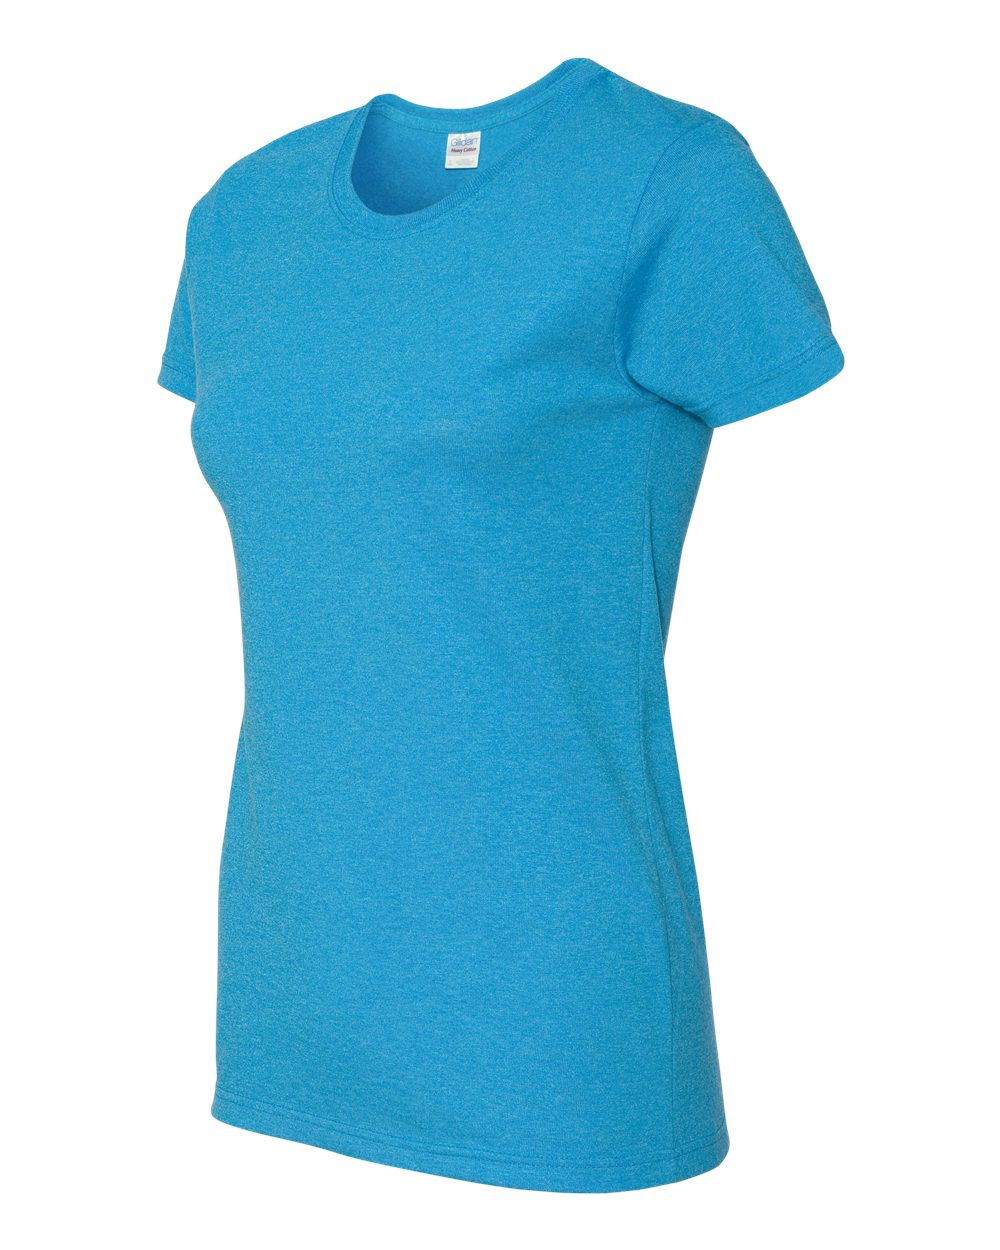 685a3df94e3 Gildan – Heavy Cotton Women s Short Sleeve T-Shirt – 5000L – Goodwin ...